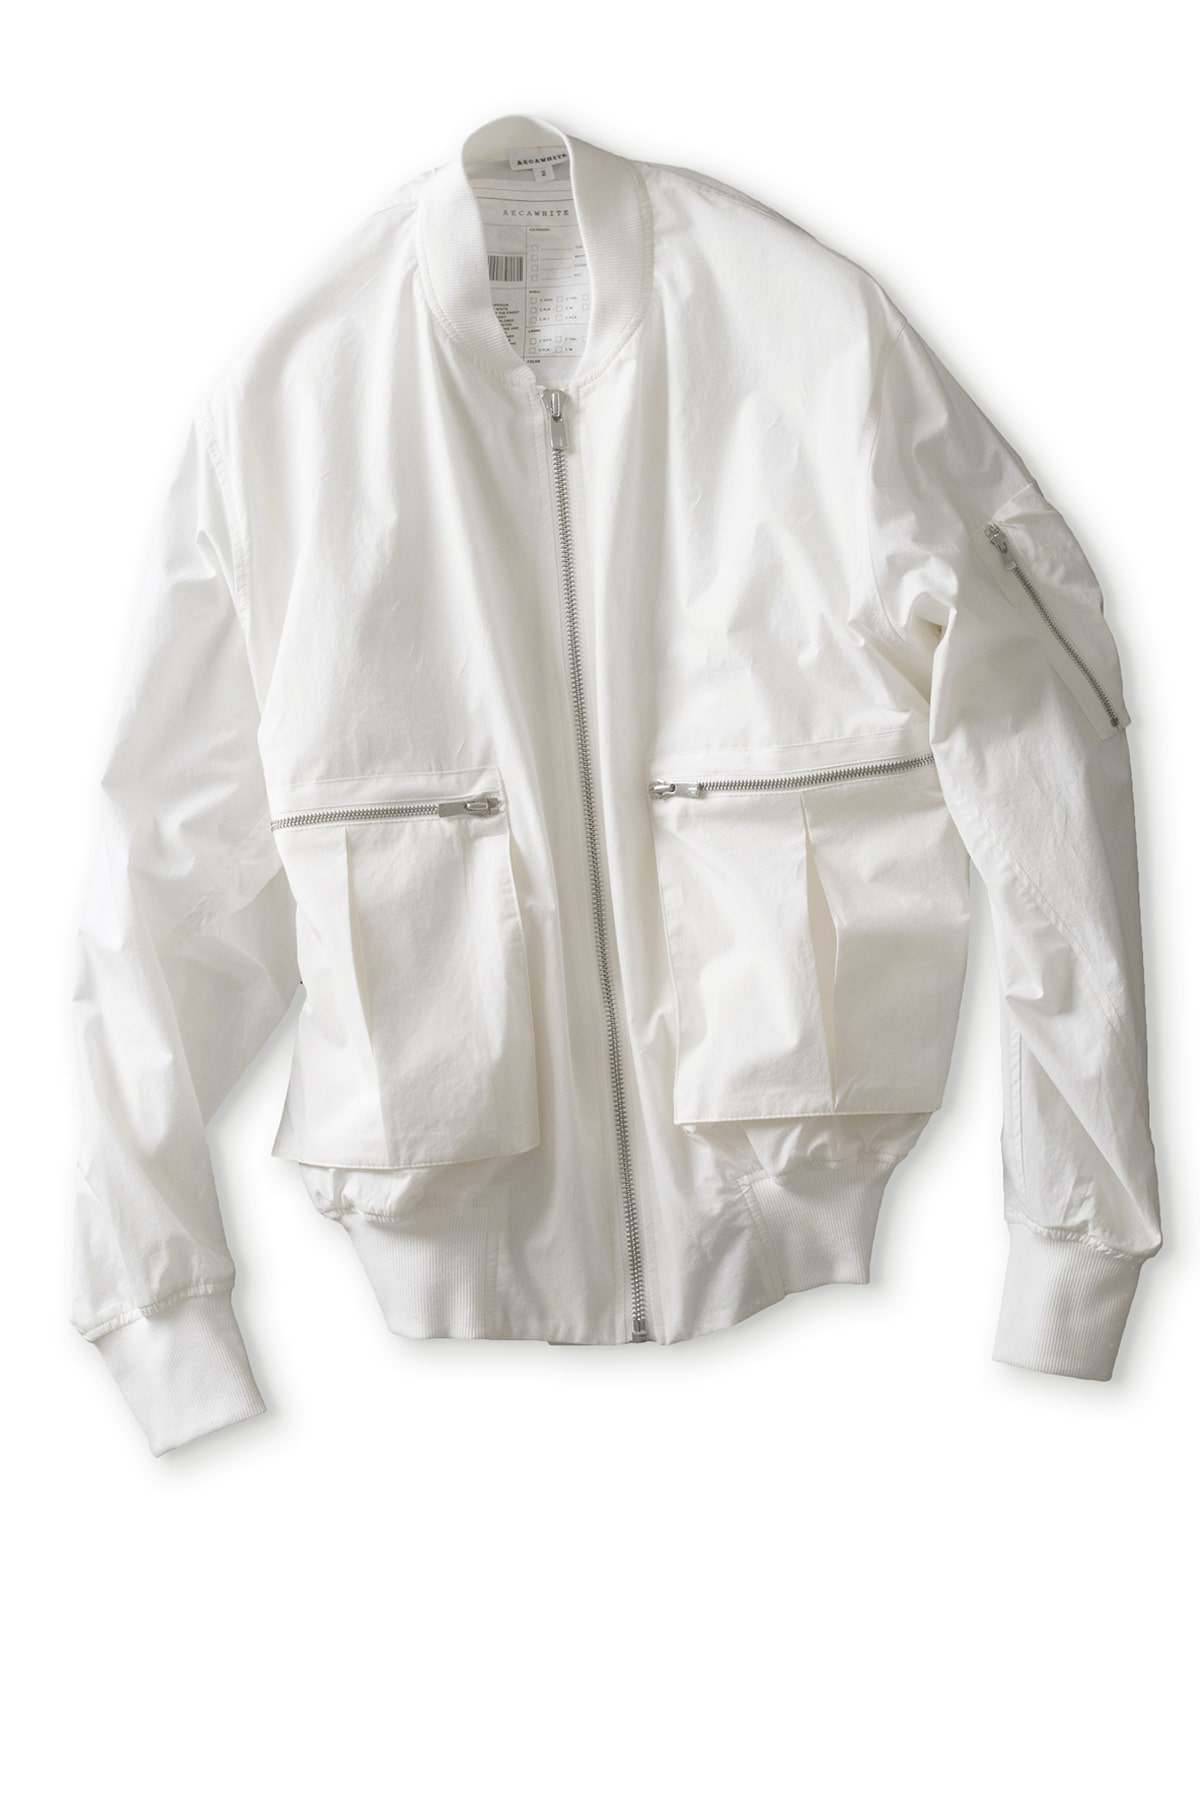 AECA WHITE : Pocket Cotton MA1 (Ivory)